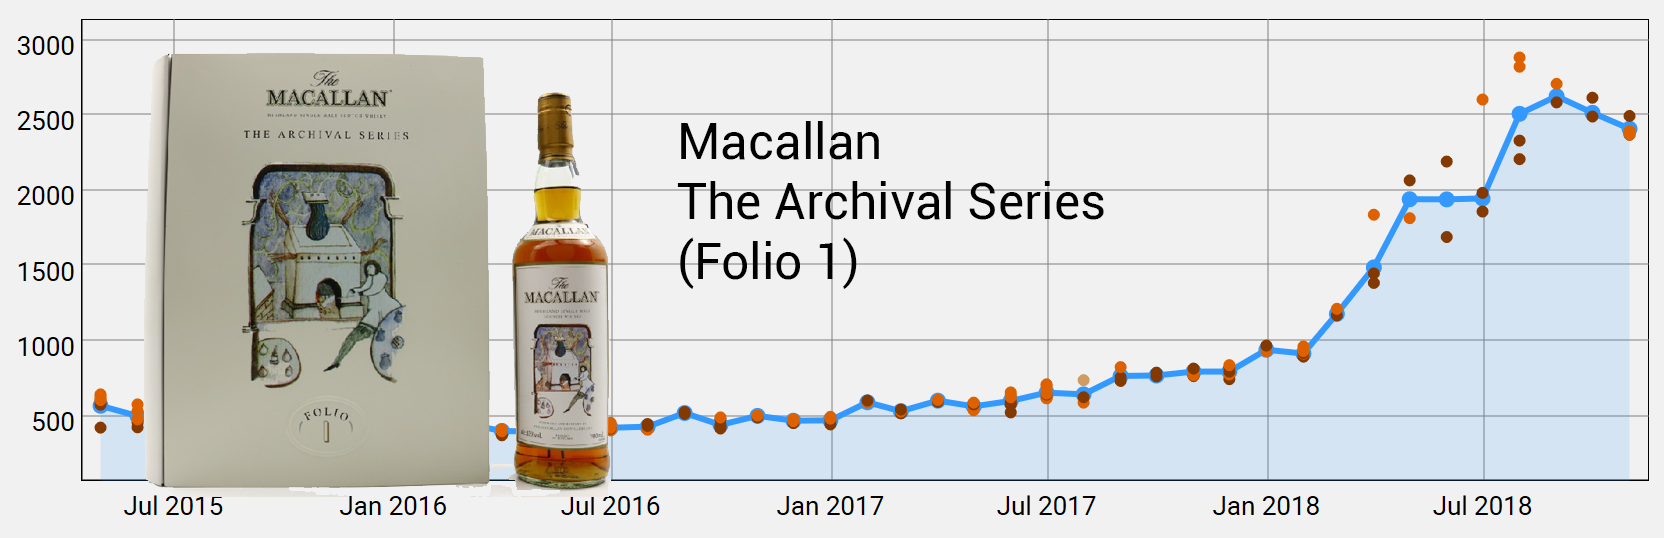 Macallan Archival Series Folio 1 by November 2018